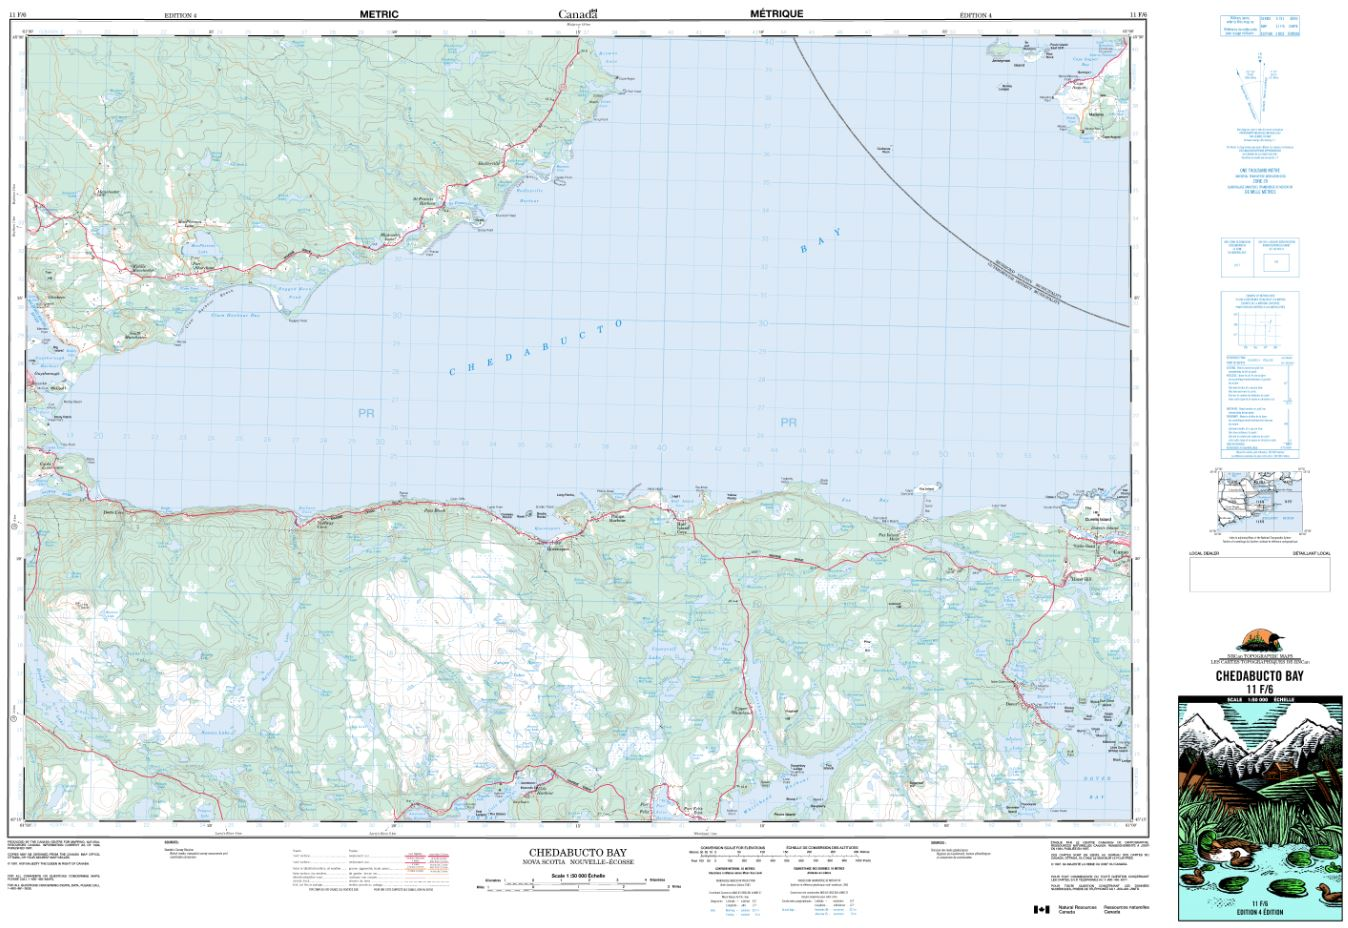 11F/06 Chedabucto Bay Topographic Map Nova Scotia